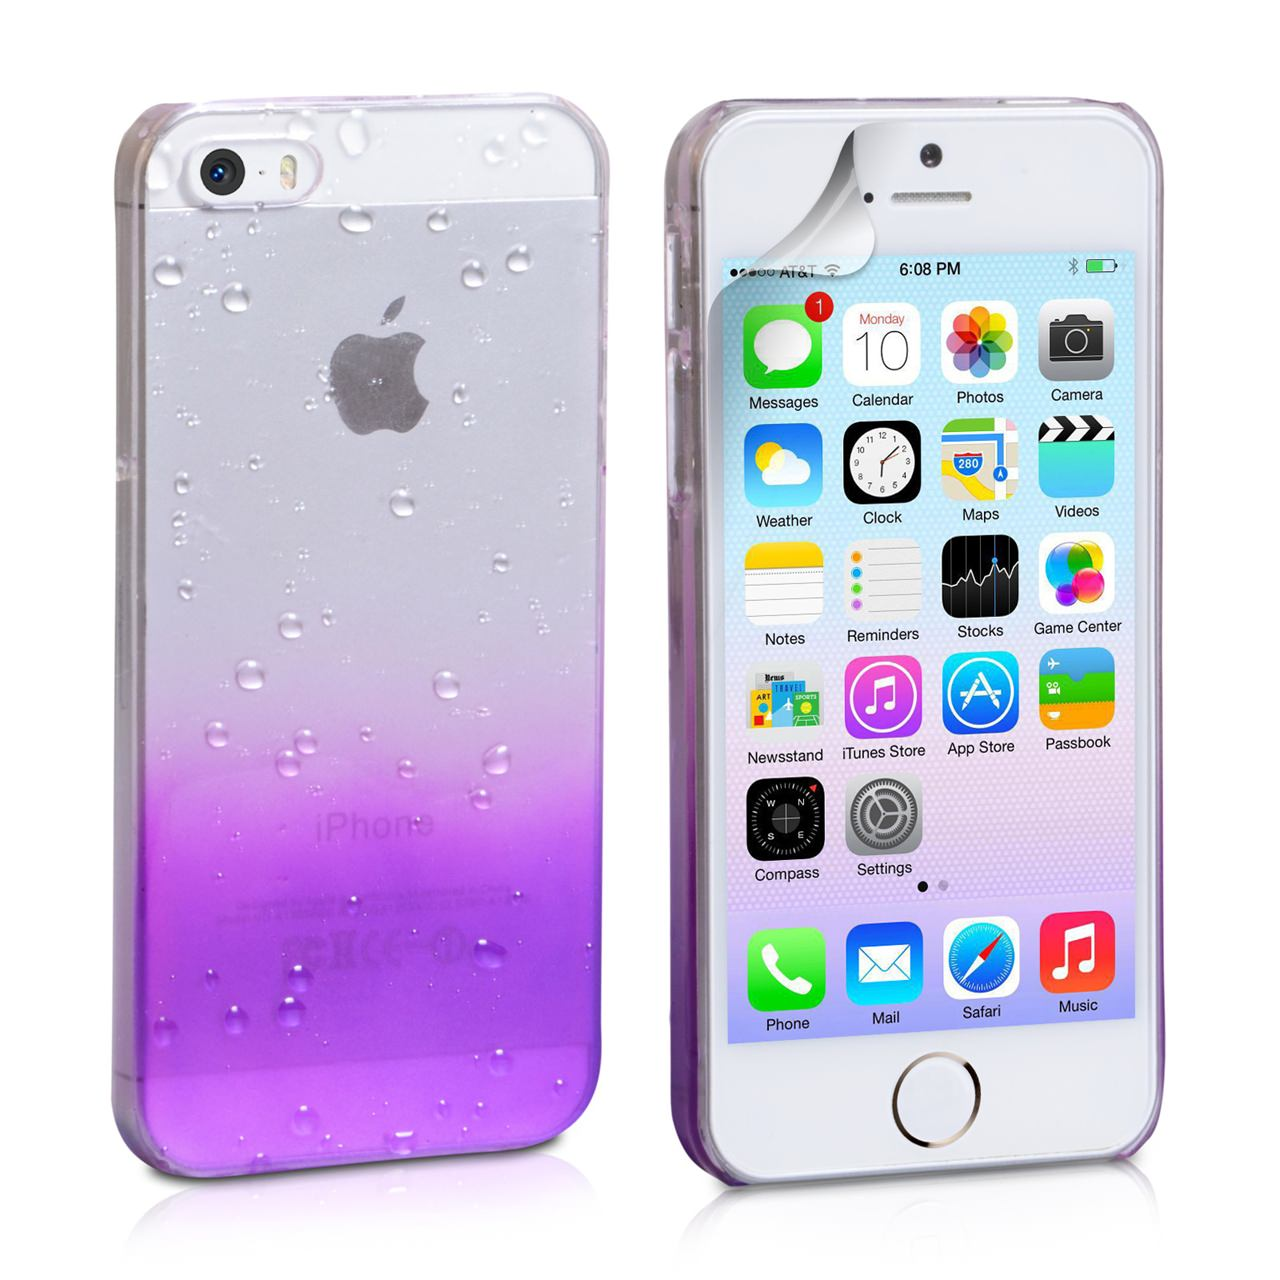 YouSave Accessories iPhone 5 / 5S Raindrop Hard Case - Purple